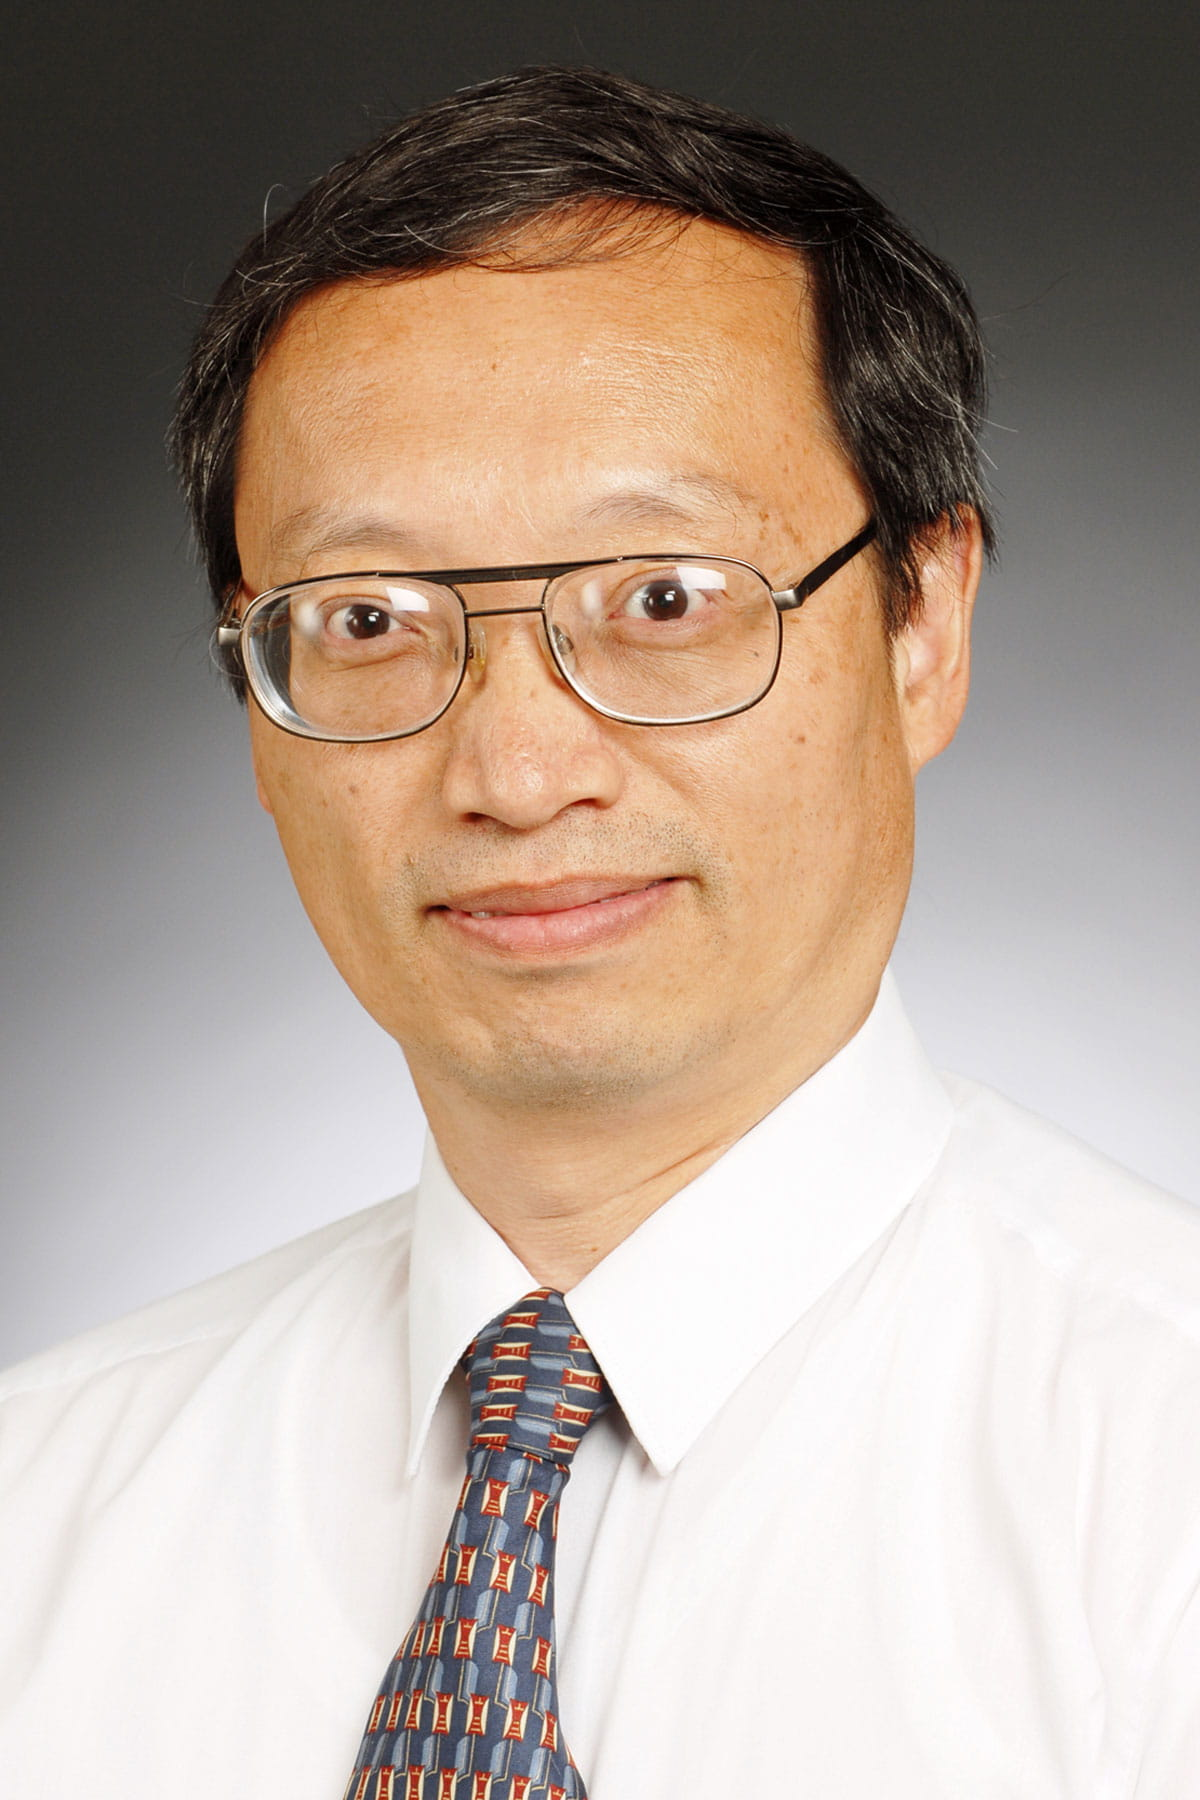 A photo of Peter Tang.